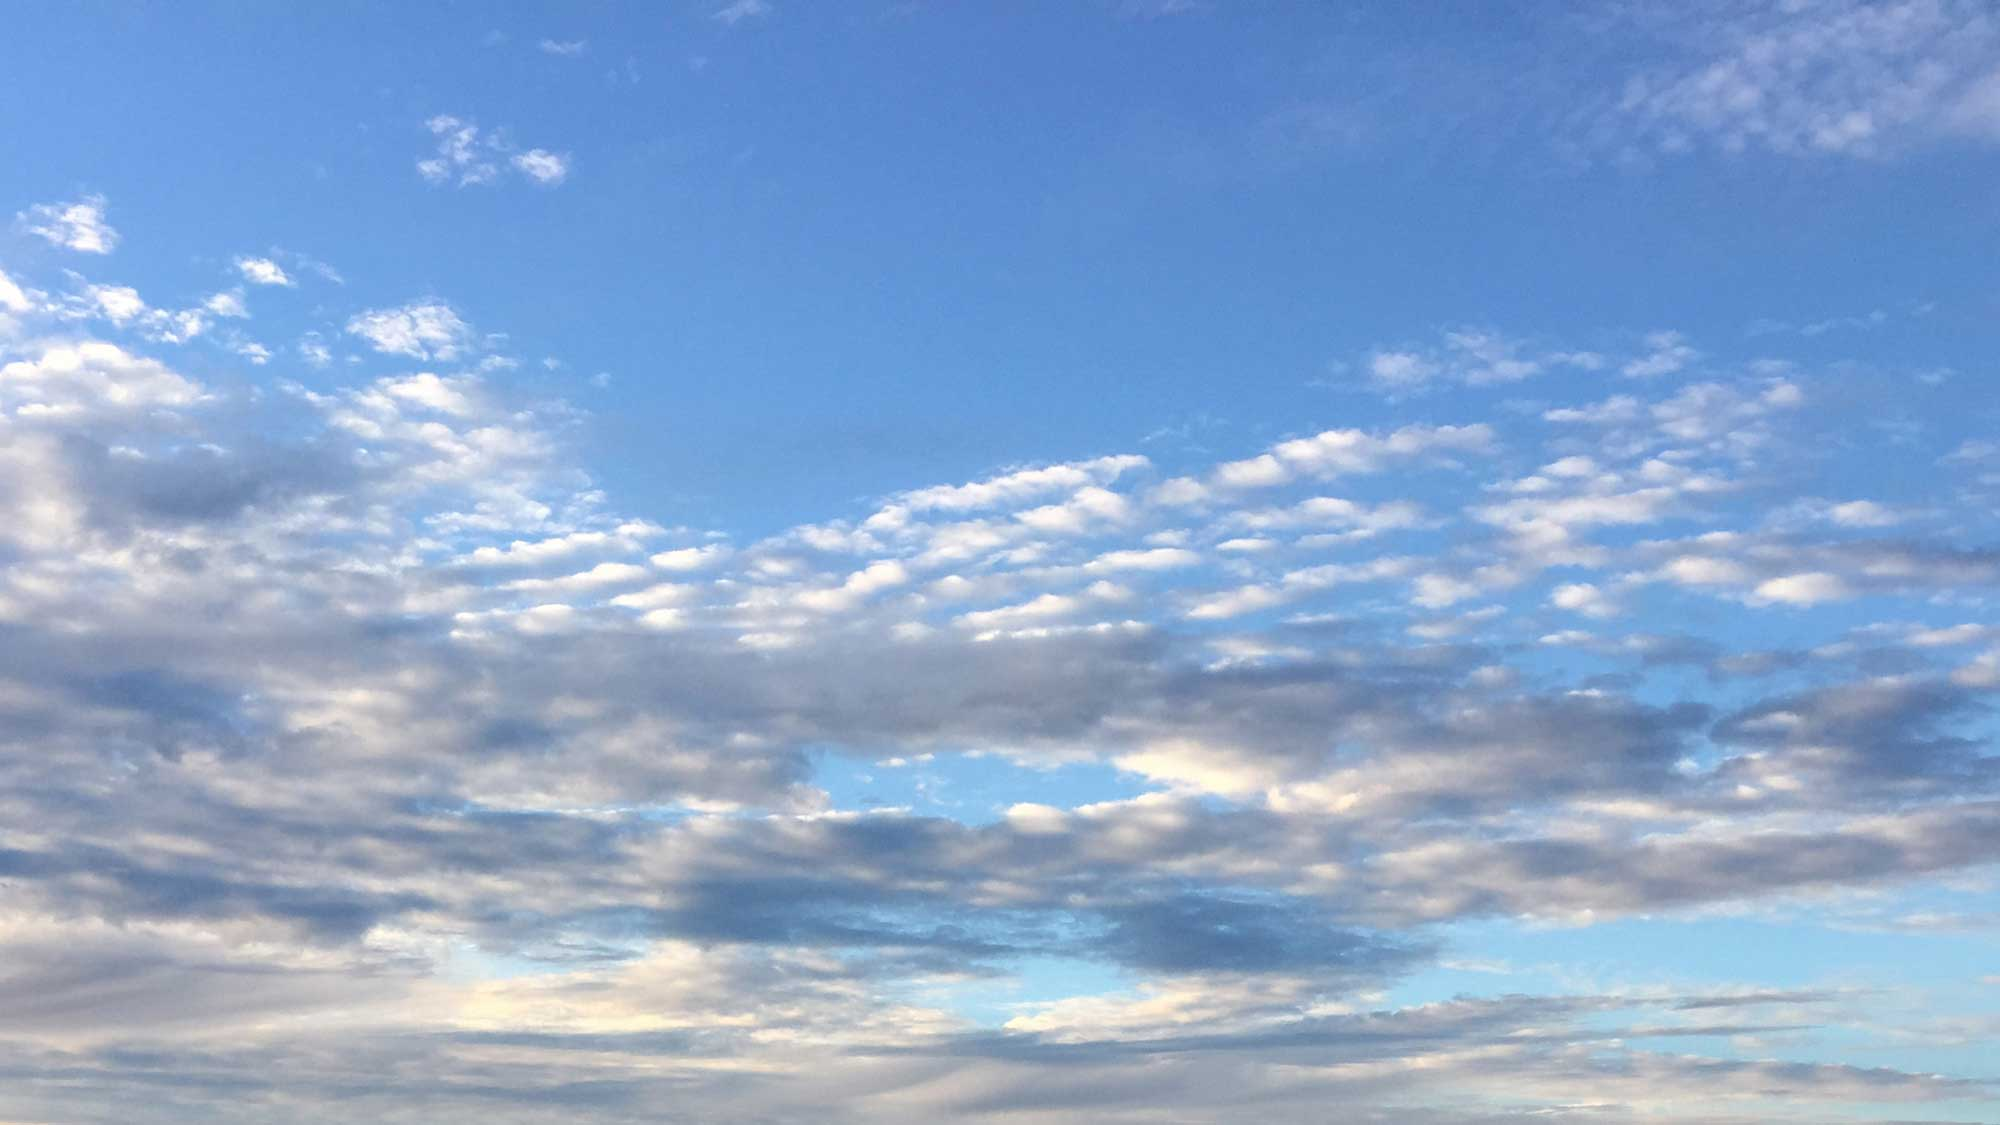 Photograph of clouds in the sky.